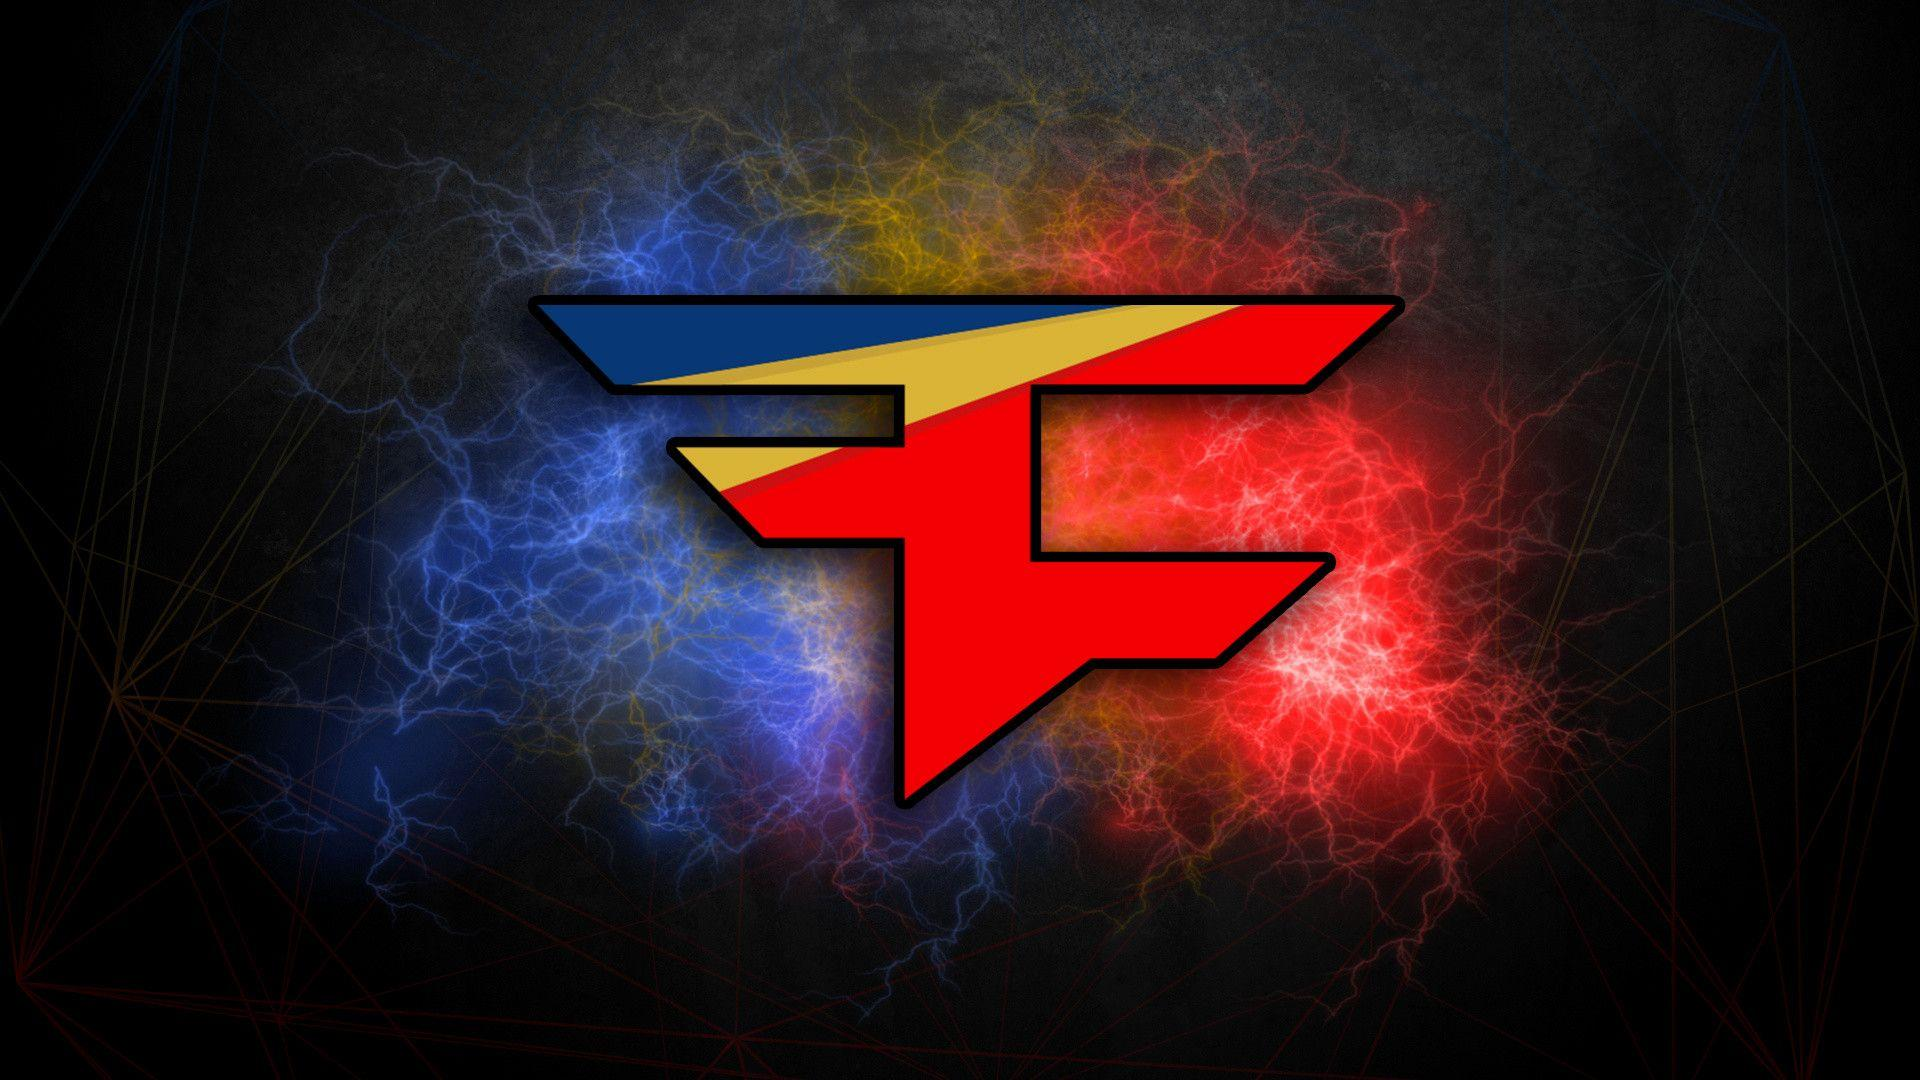 Faze Wallpapers